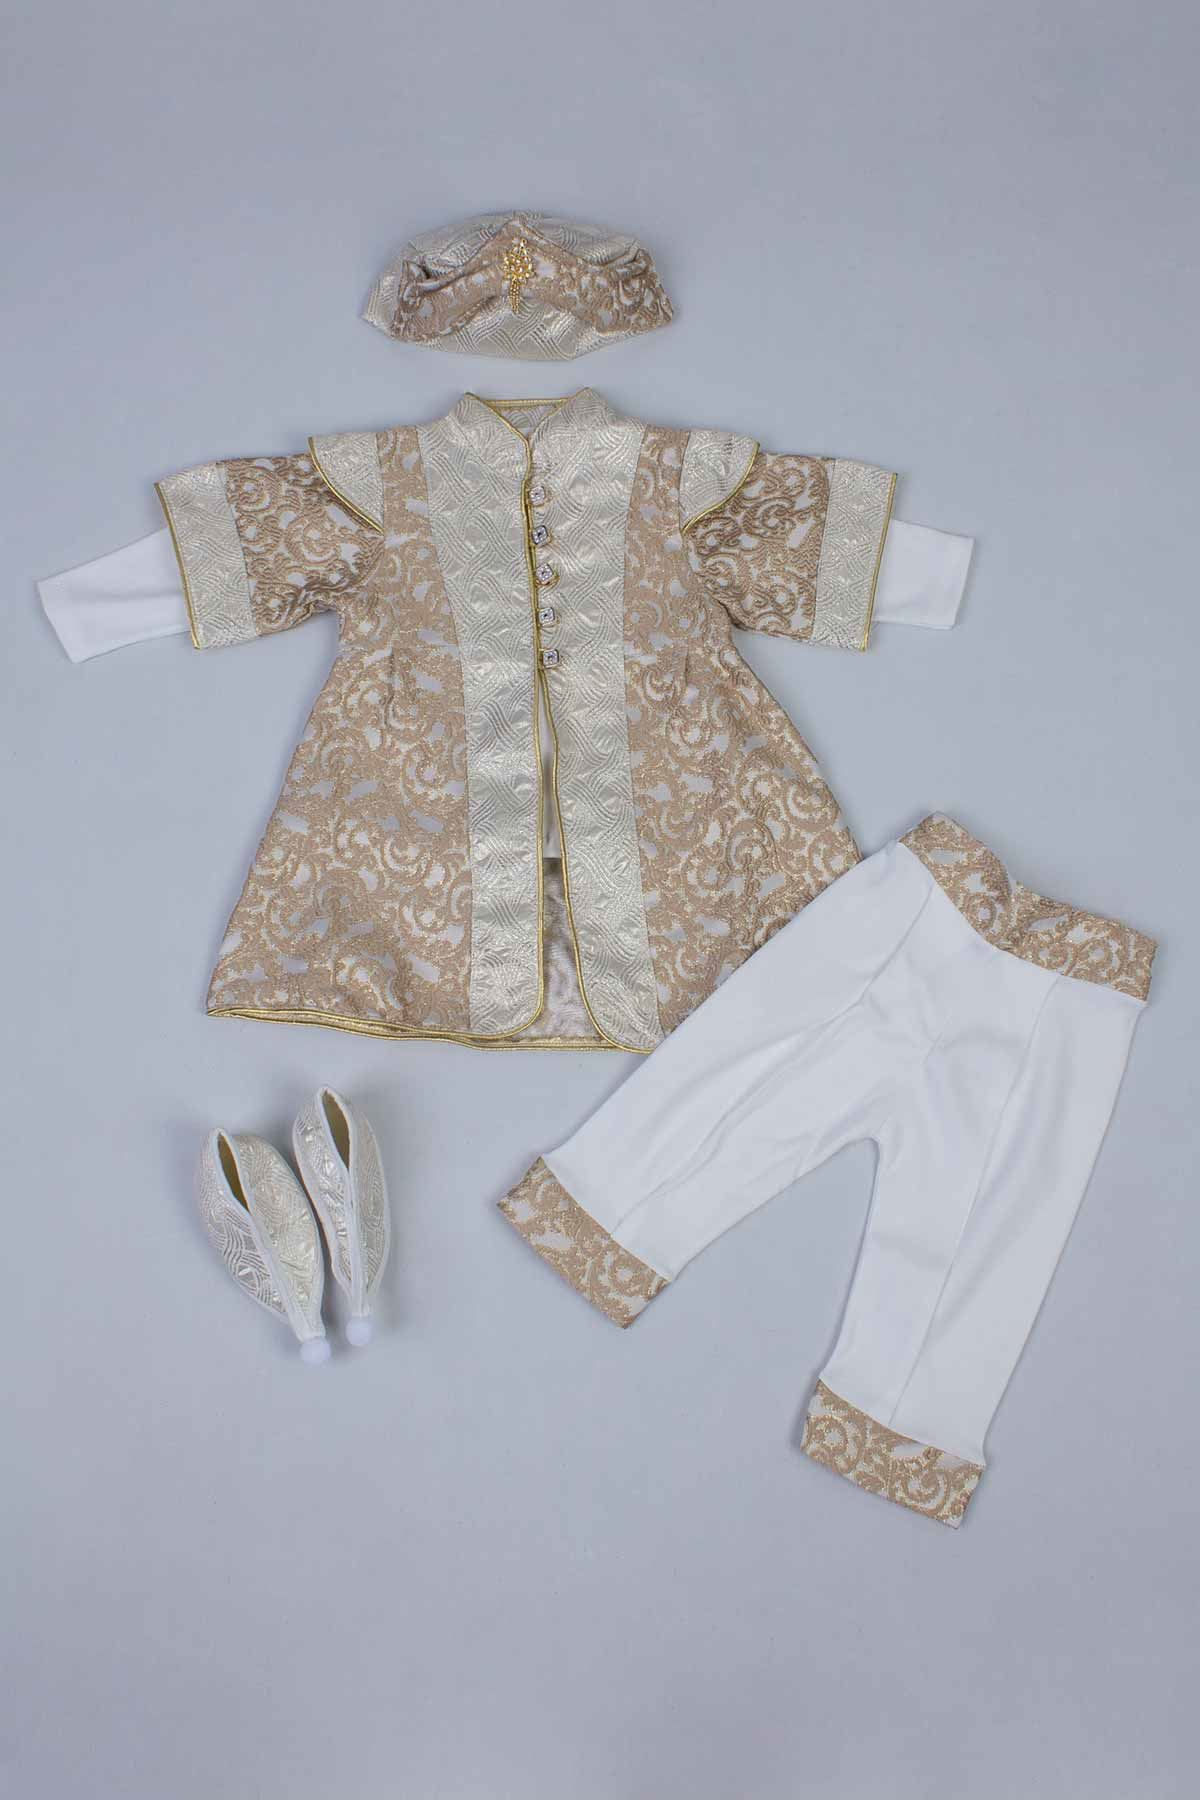 Cream Boy Baby Suit Prince Ottoman Prince Gentleman Formal Dresses Boys Babies 5 Piece Set Male Clothing Special Occasions Outfit Model